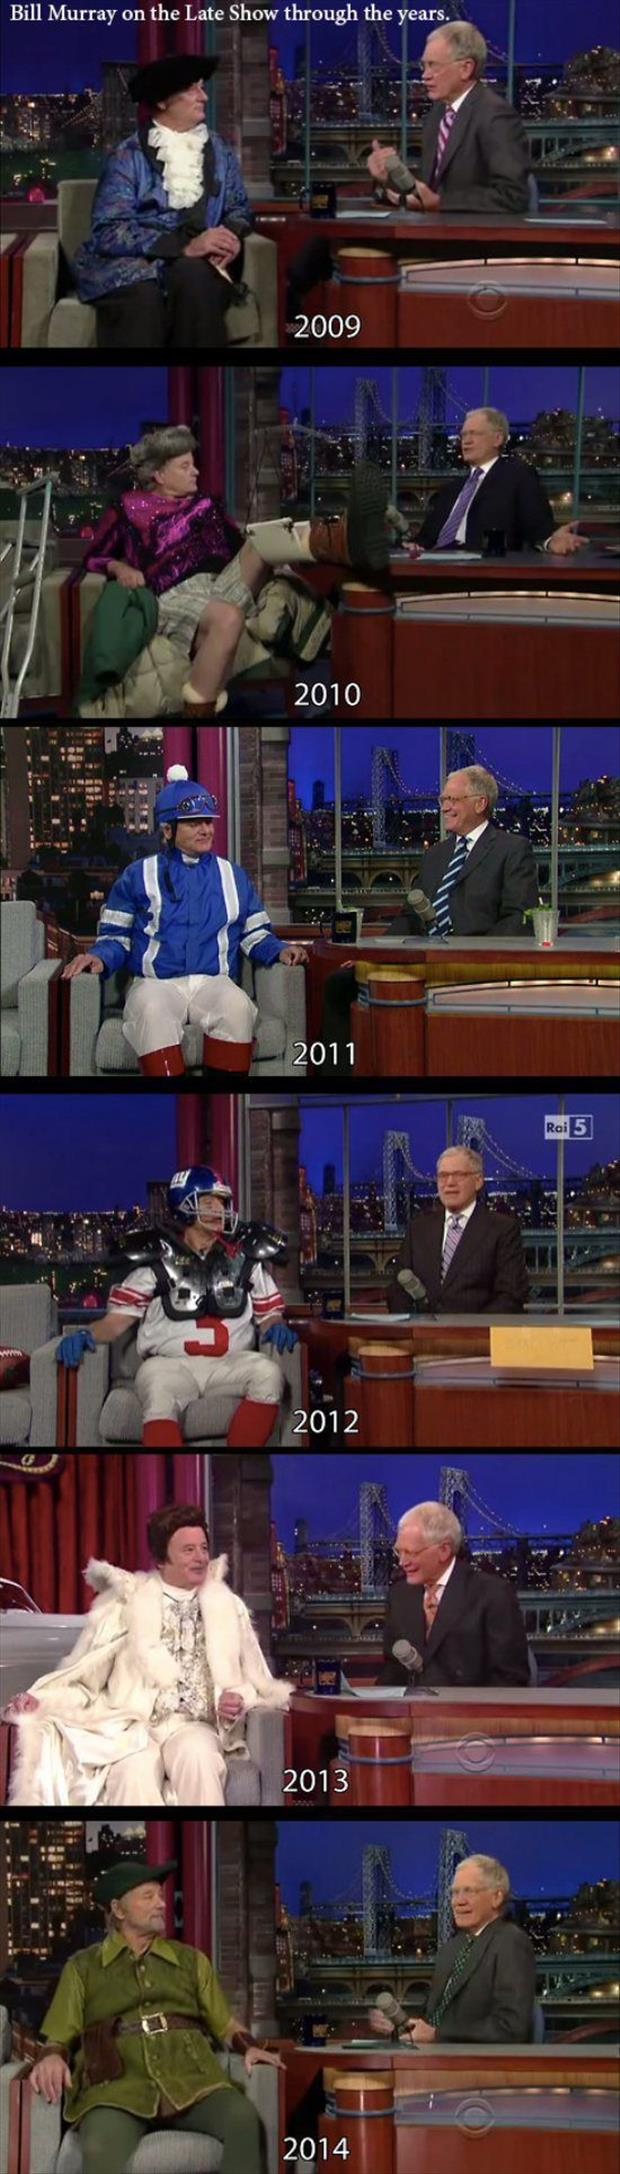 funny bill murray on the late show